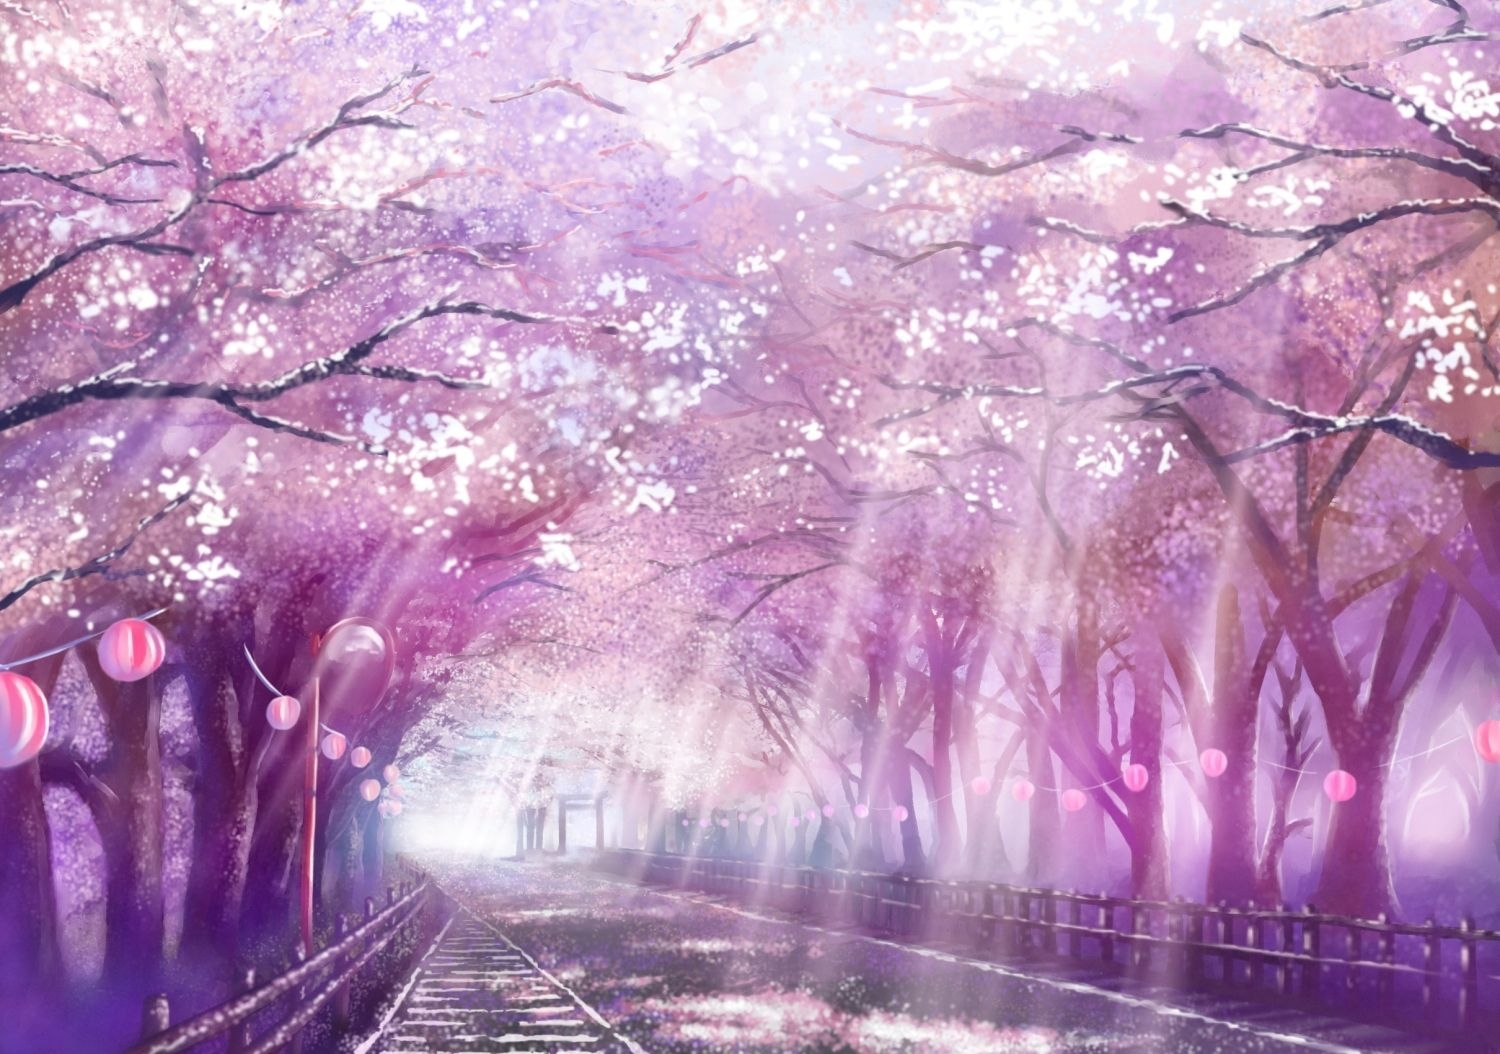 image from http://pcwallart/images/cherry-blossom-tree-anime